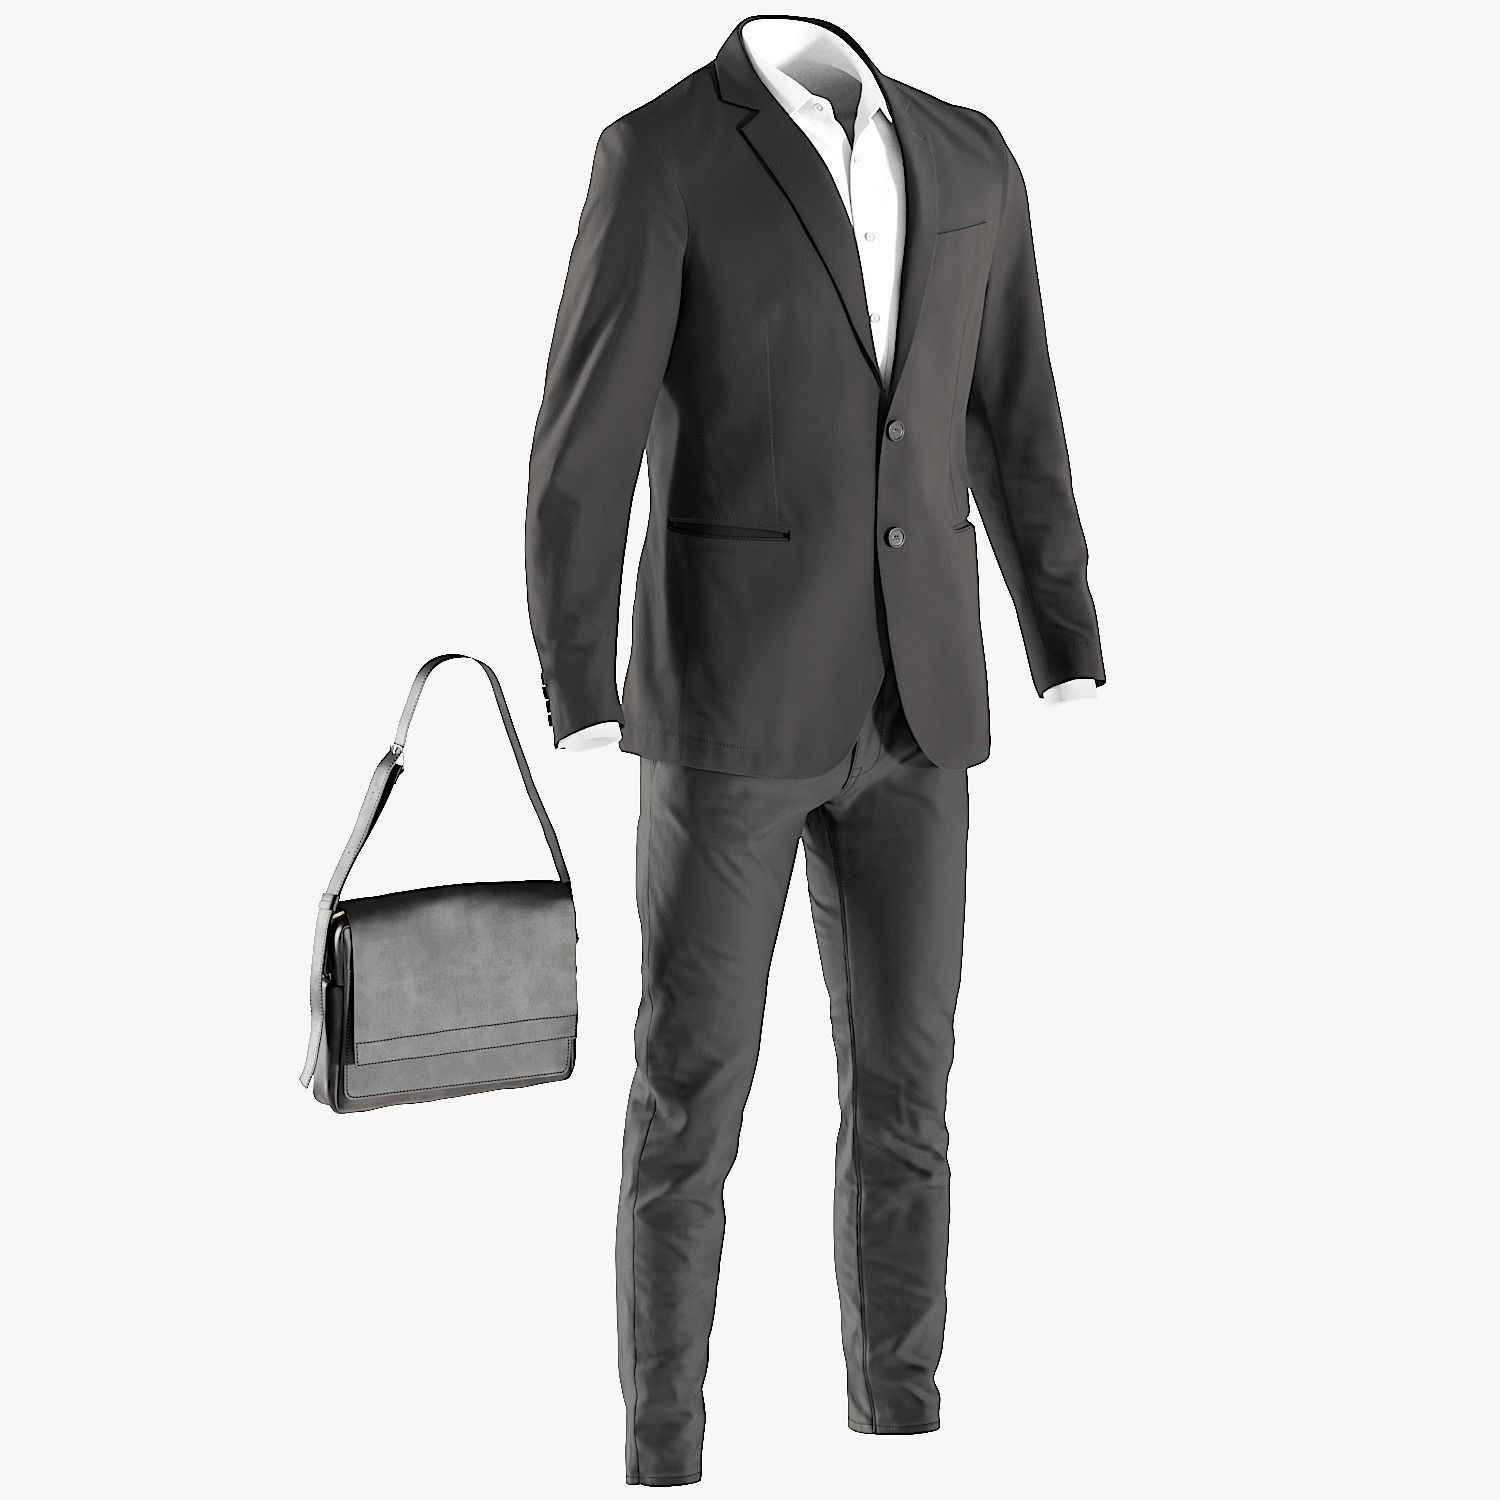 Mens Business Suit with Shirt Bag 6